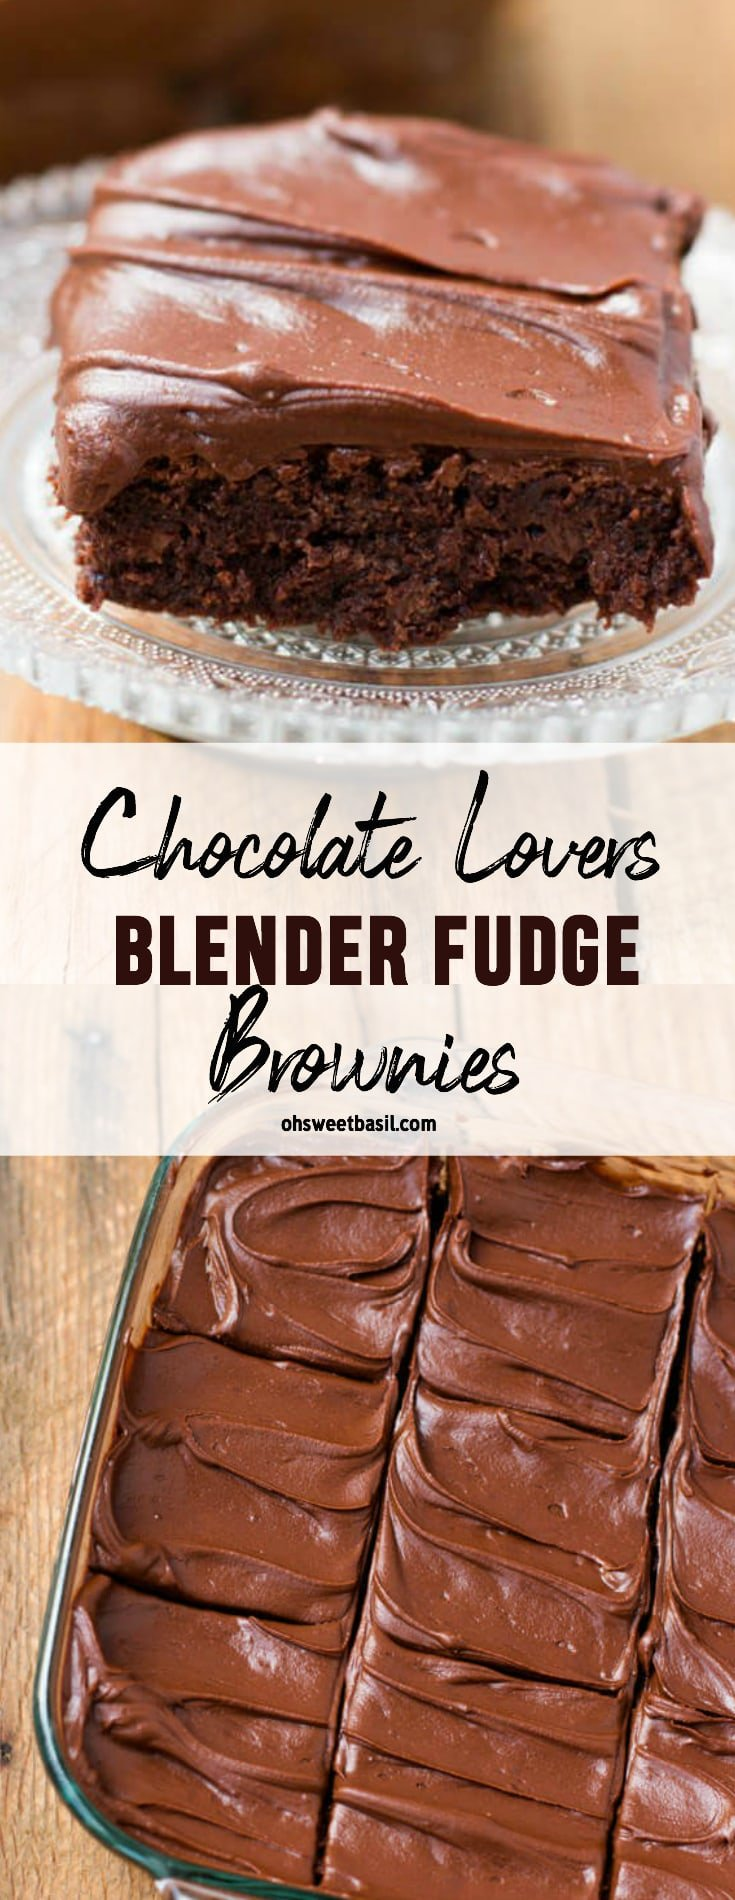 A pan of the best chocolate lovers fudge brownies that are made in a blender